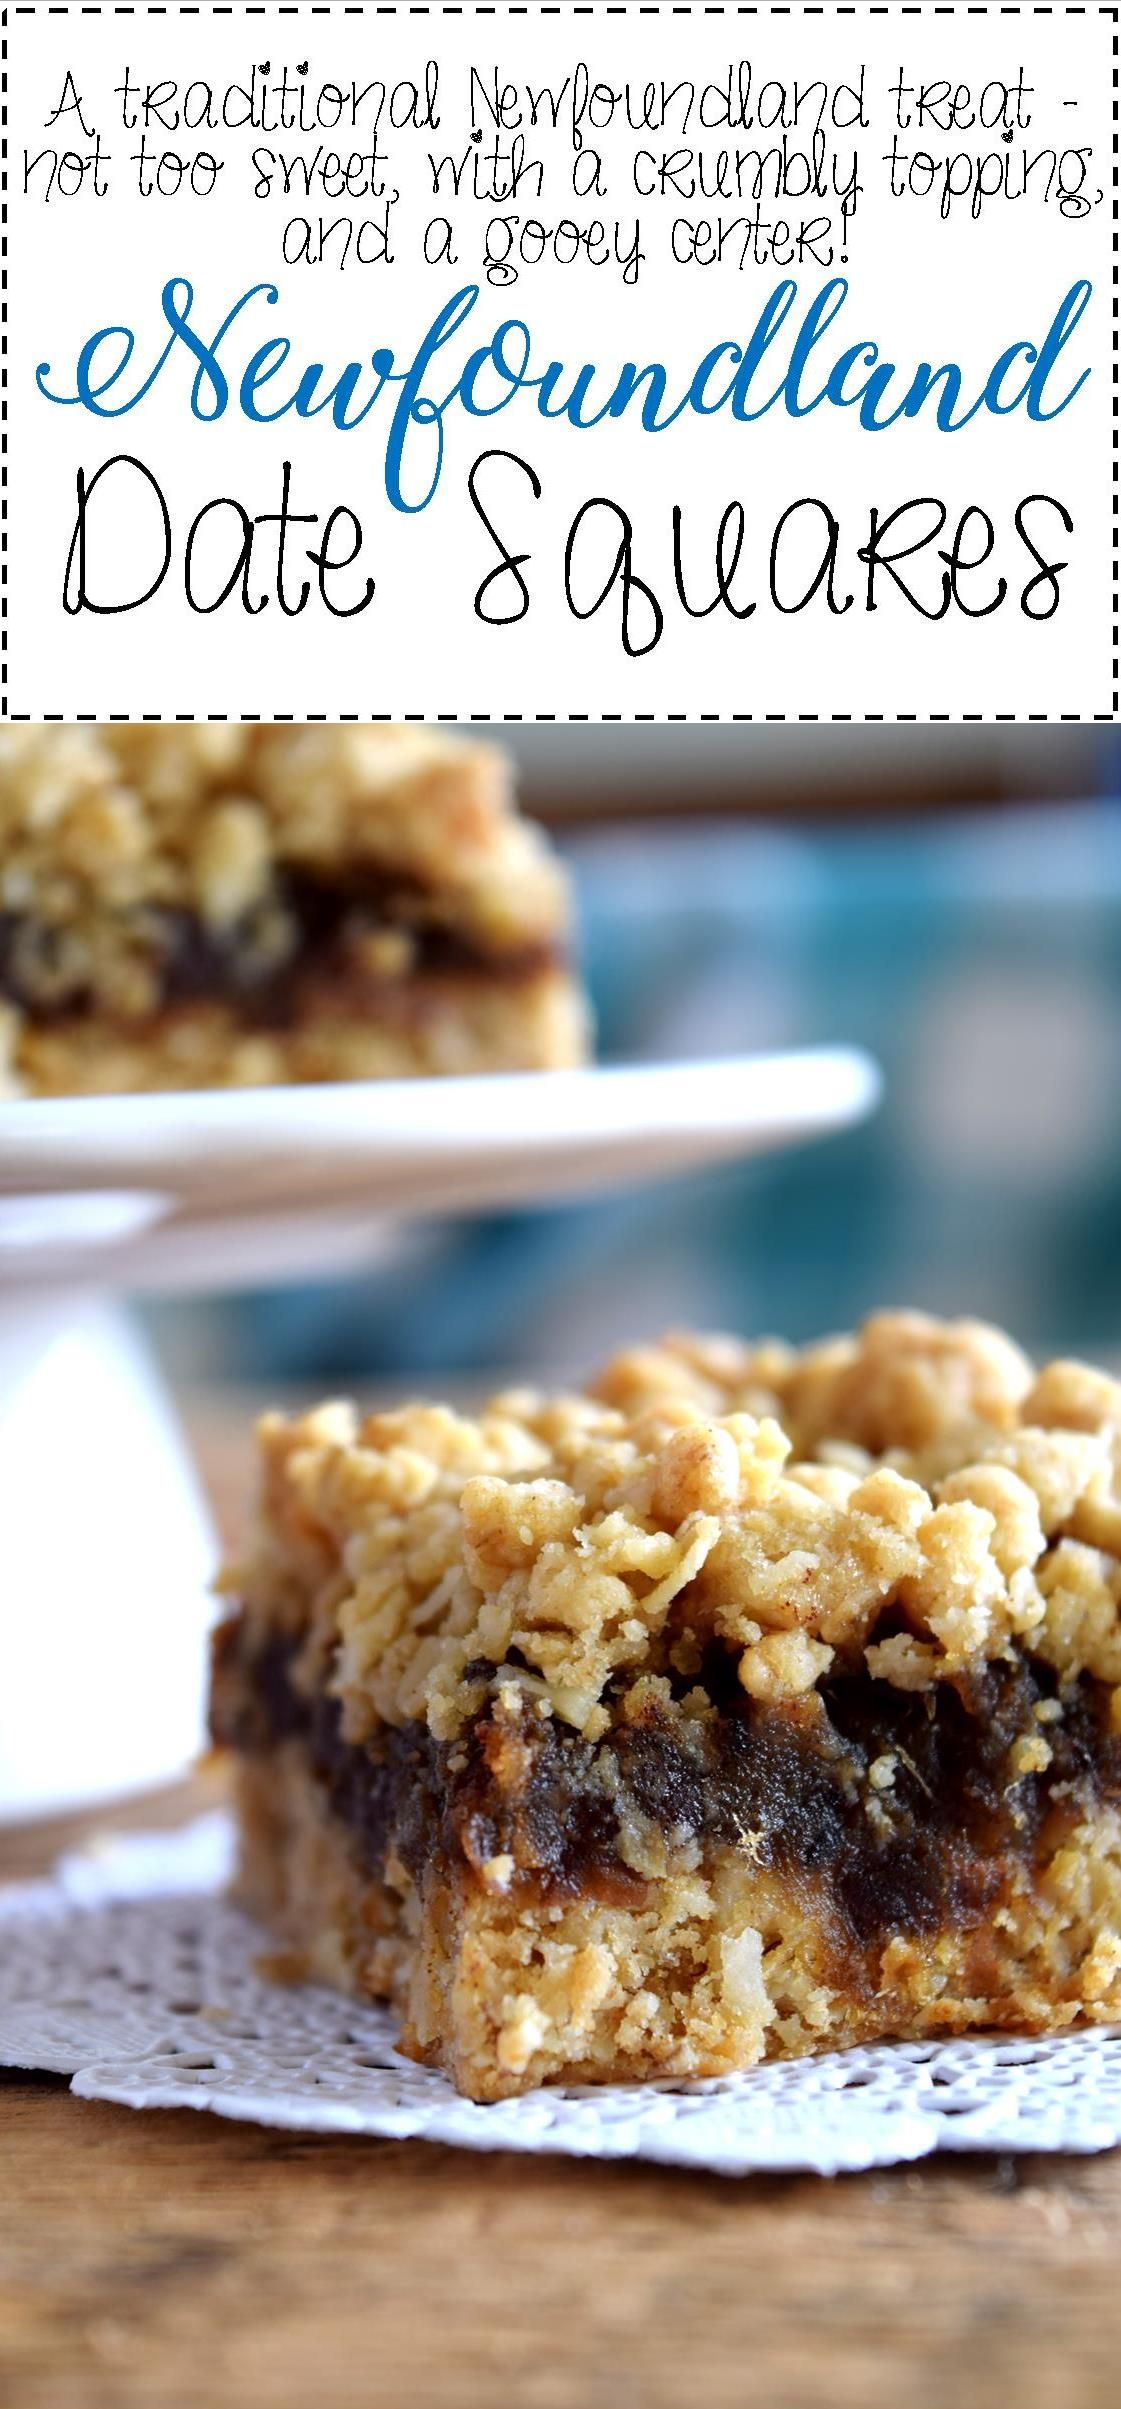 Newfoundland Date Squares are a traditional Newfoundland treat! Slightly sweet, with a crumbly topping, and a soft, chewy center, perfect for an afternoon snack with a cup of hot tea! Date Squares and Newfoundland go hand in hand – that's…